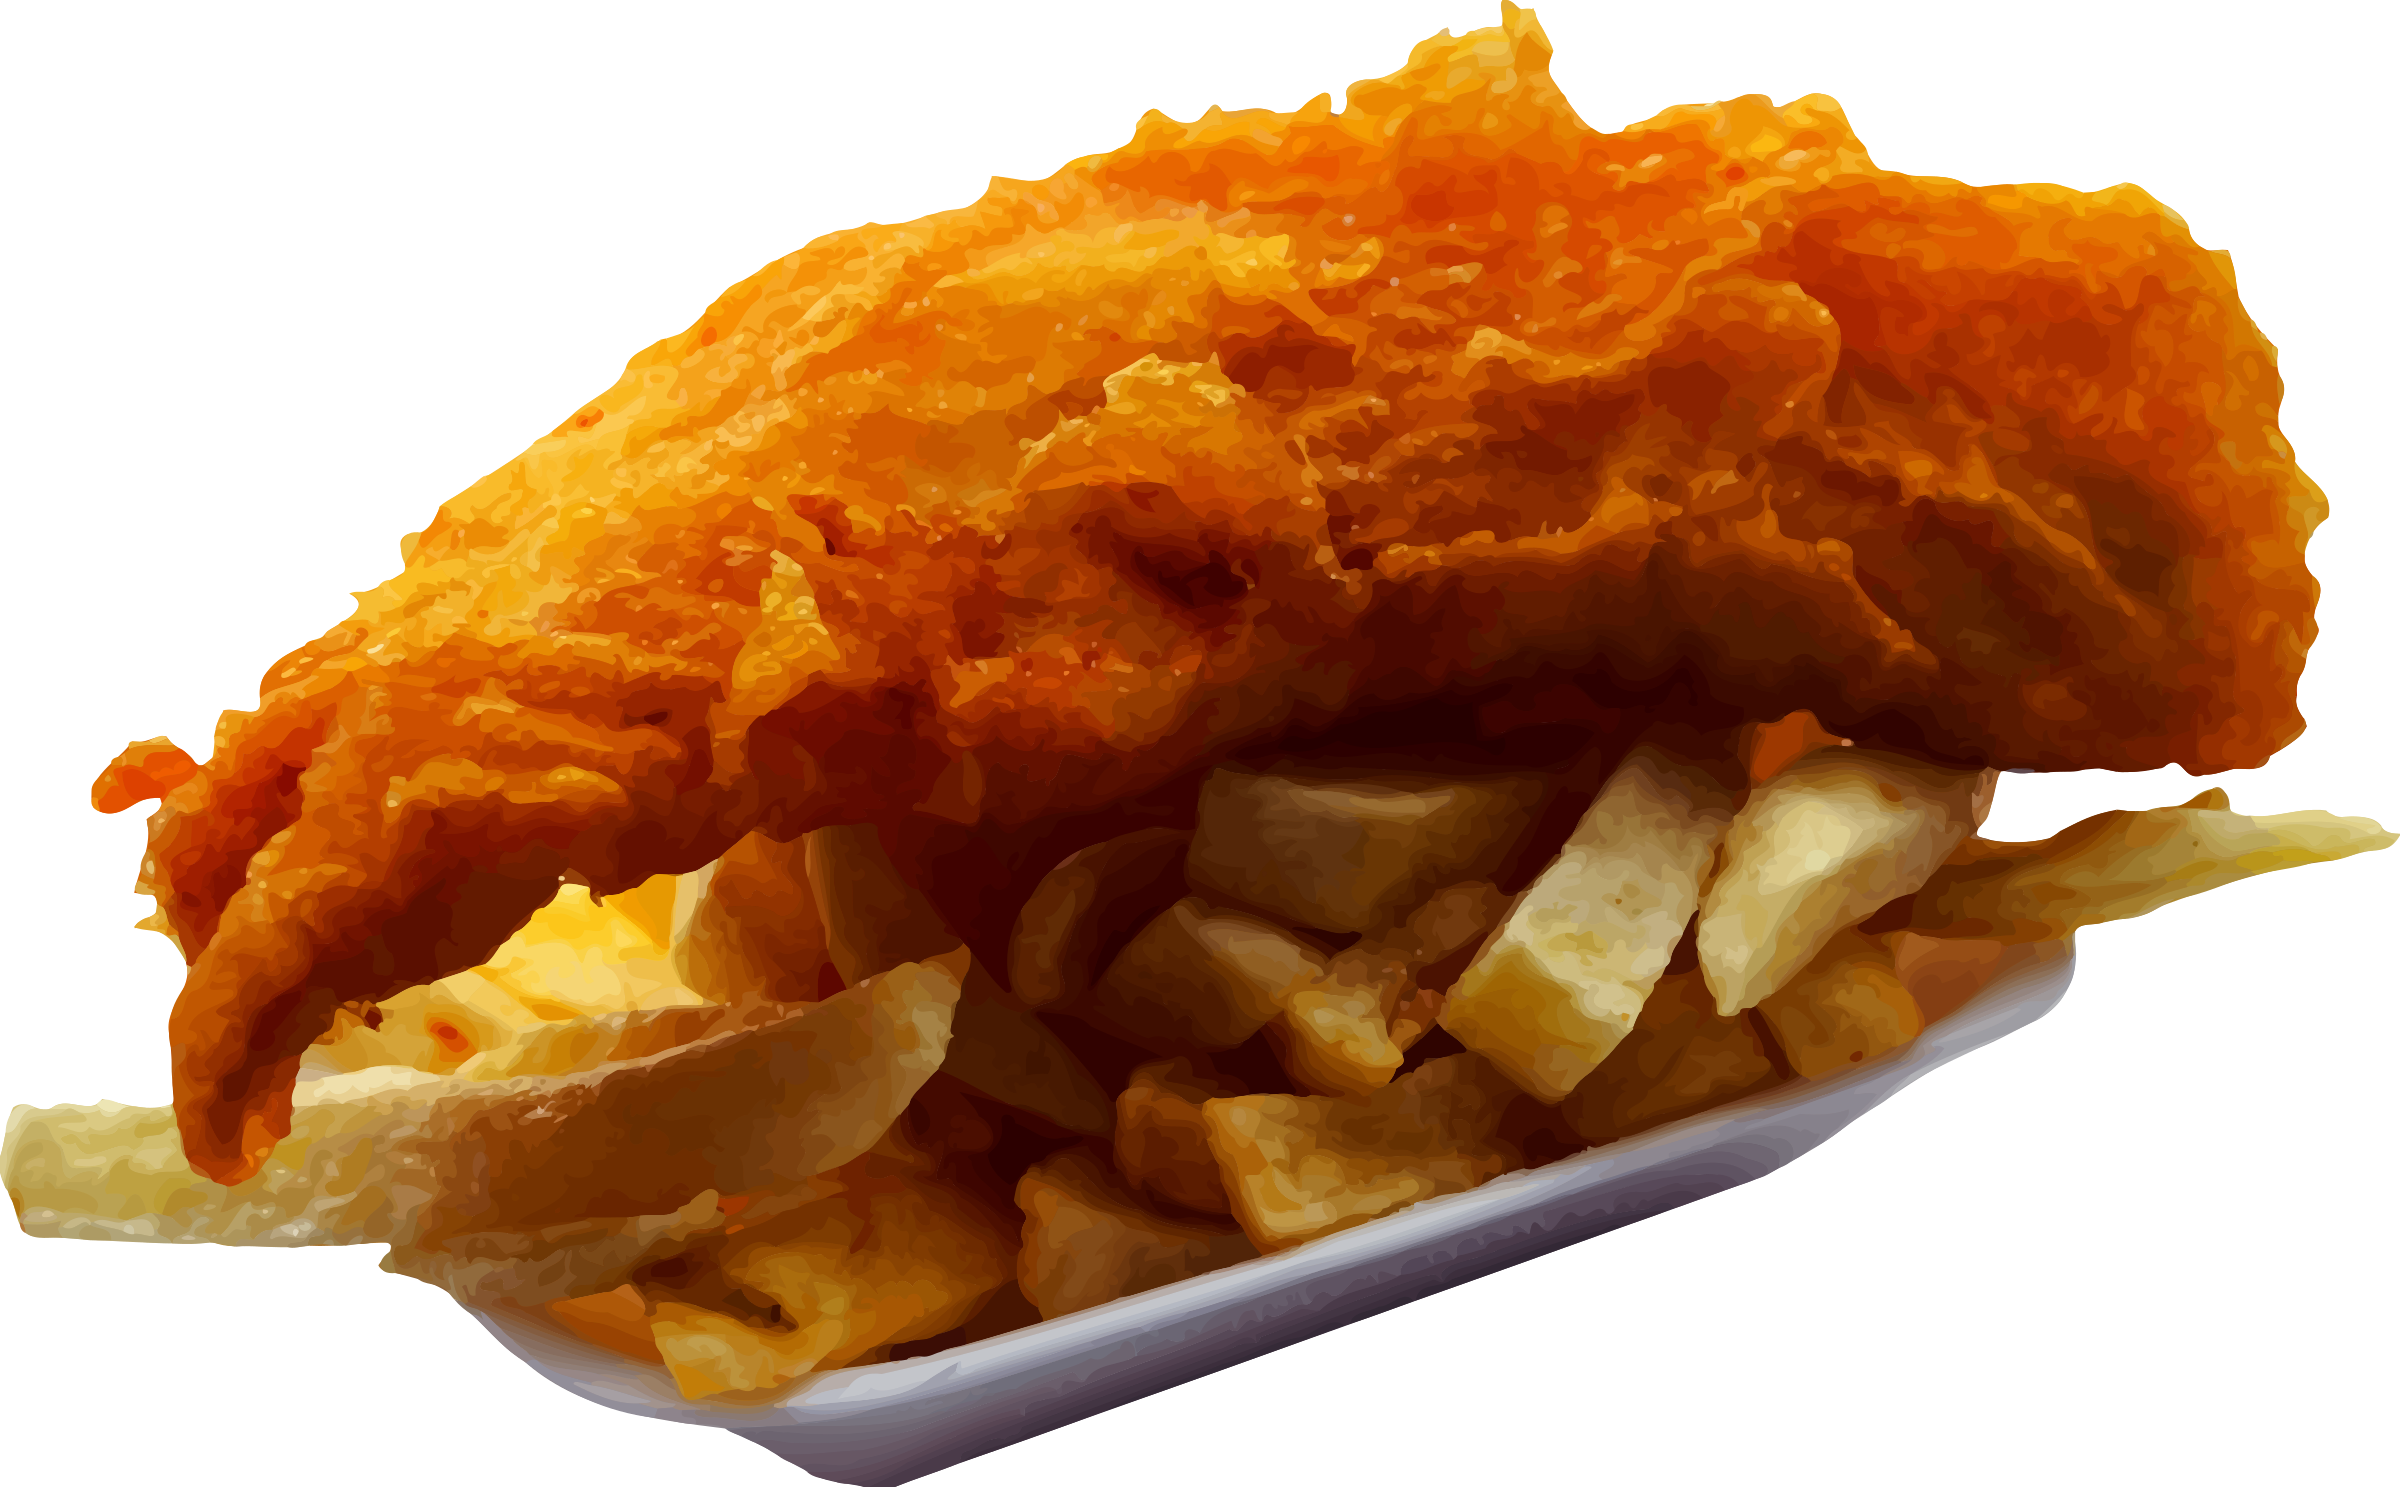 Fish and chips png. Icons free downloads this